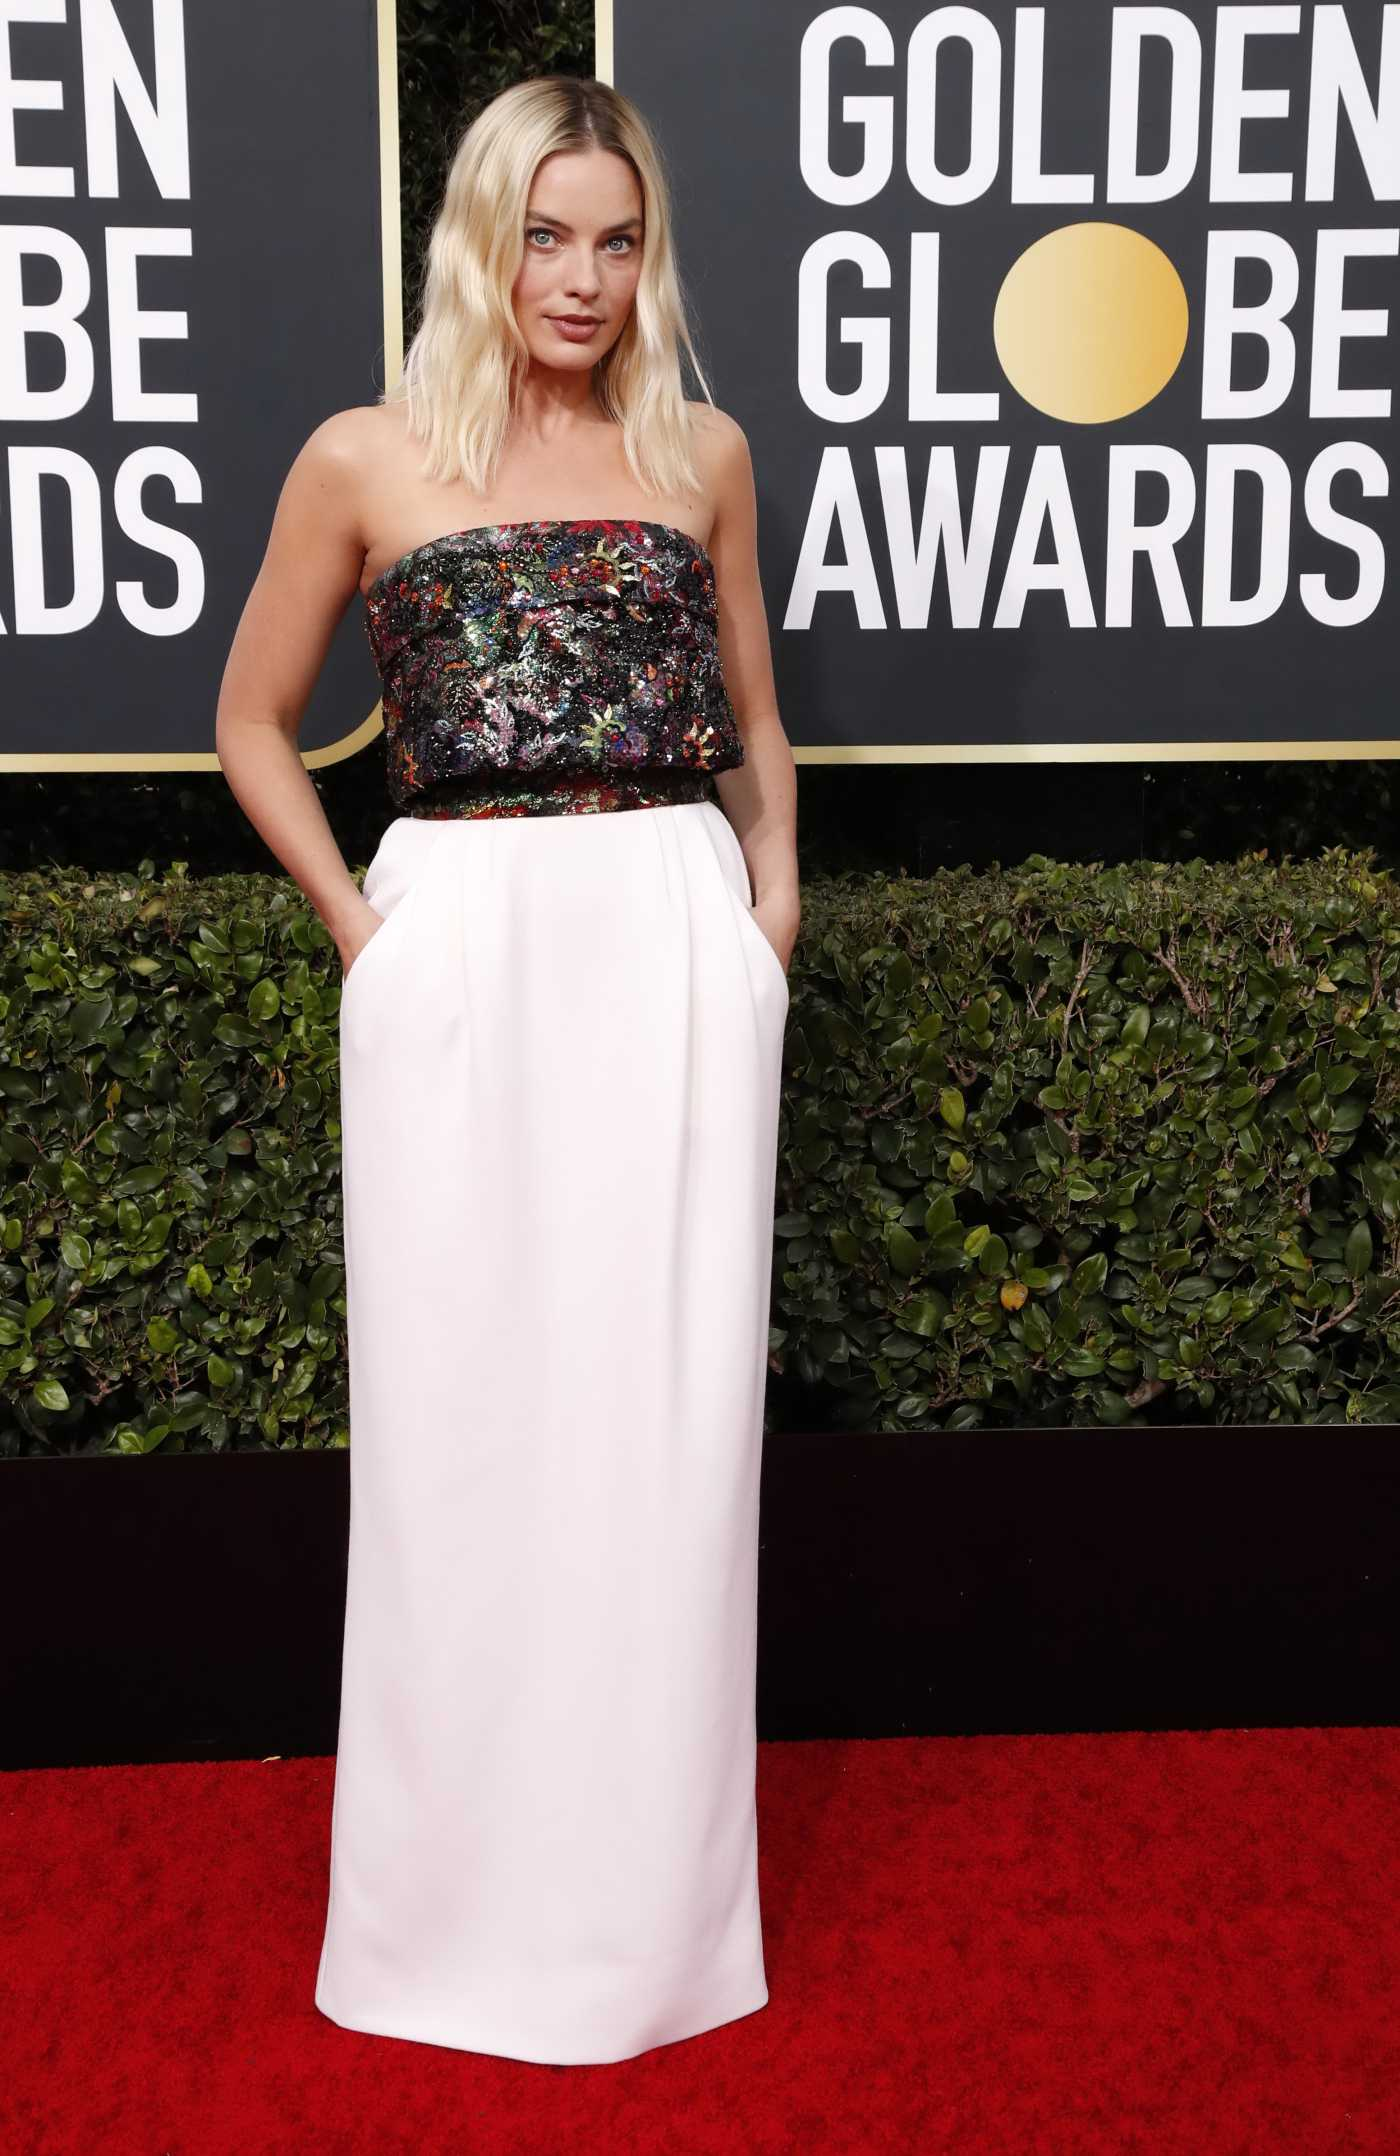 Margot Robbie Attends the 77th Annual Golden Globe Awards at the Beverly Hilton Hotel in Beverly Hills 01/05/2020